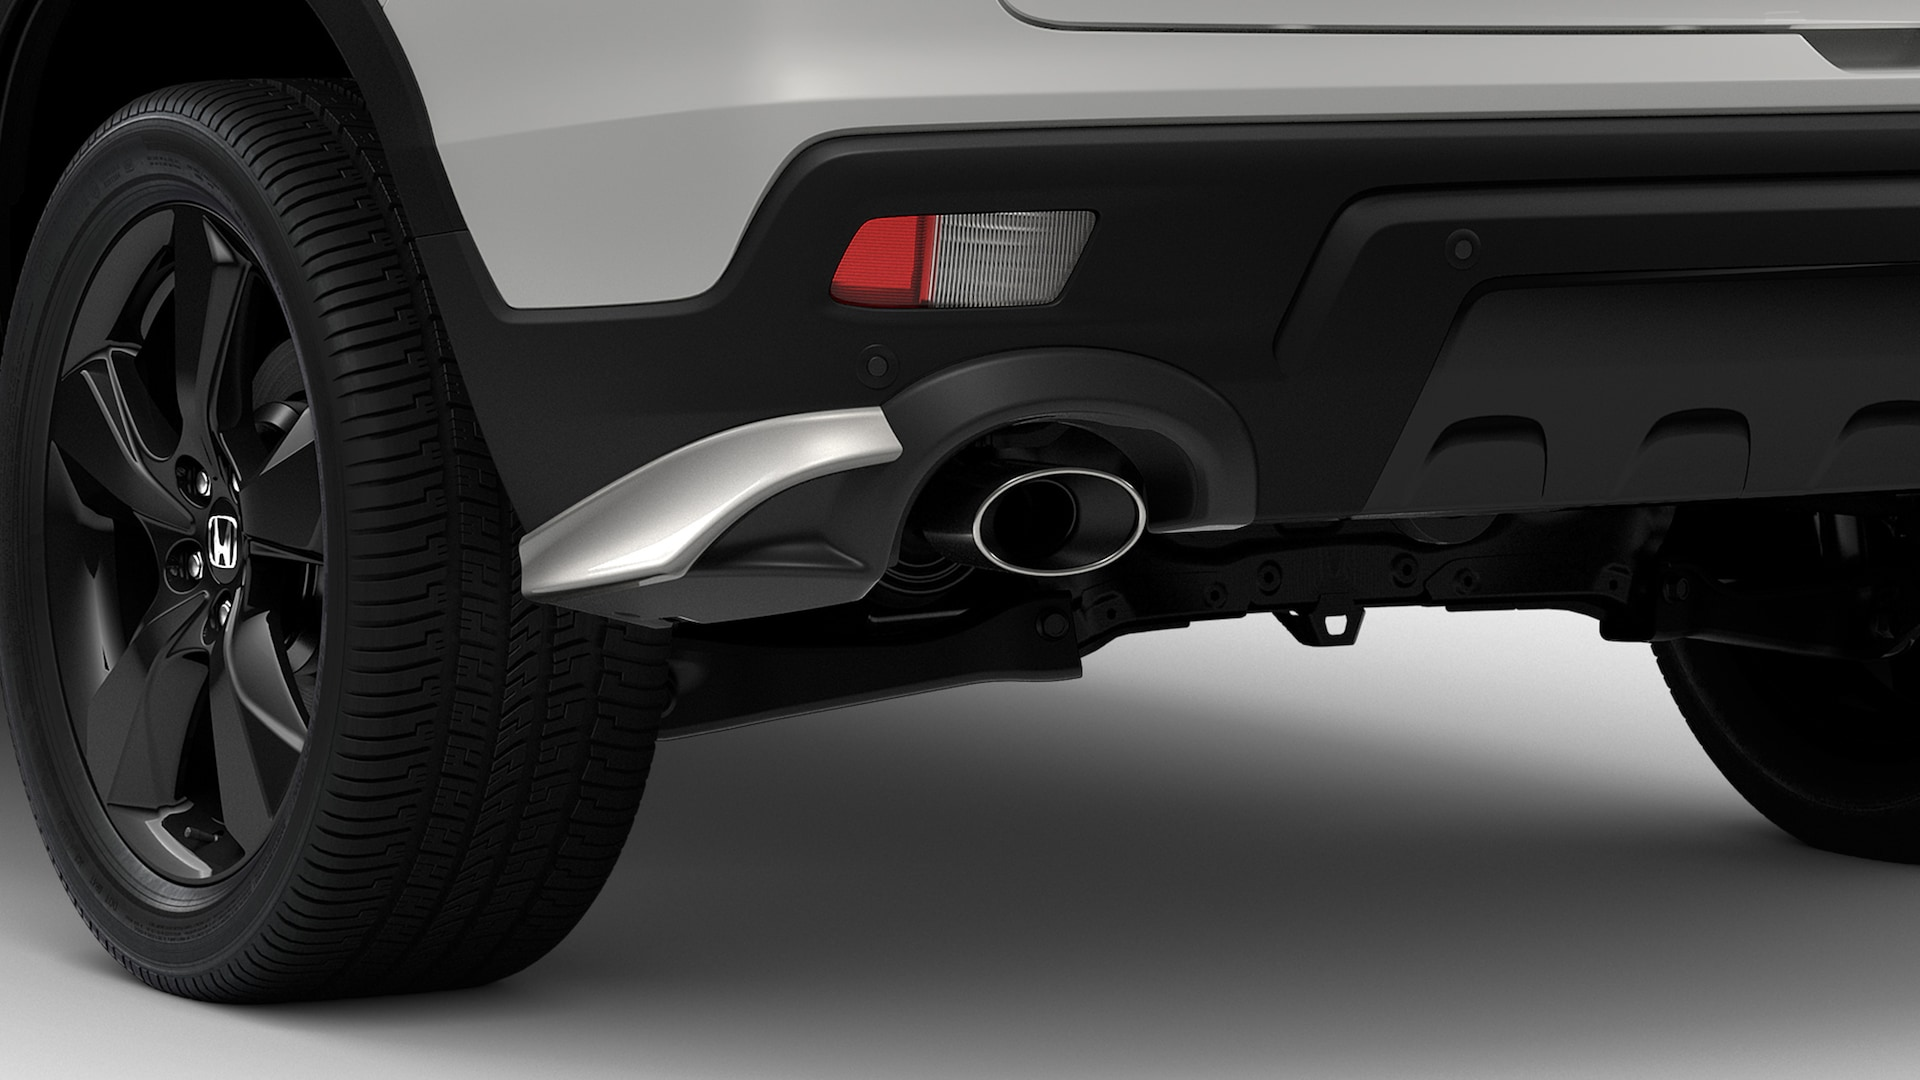 Detail of accessory rear underbody spoiler on the 2020 Honda Passport.